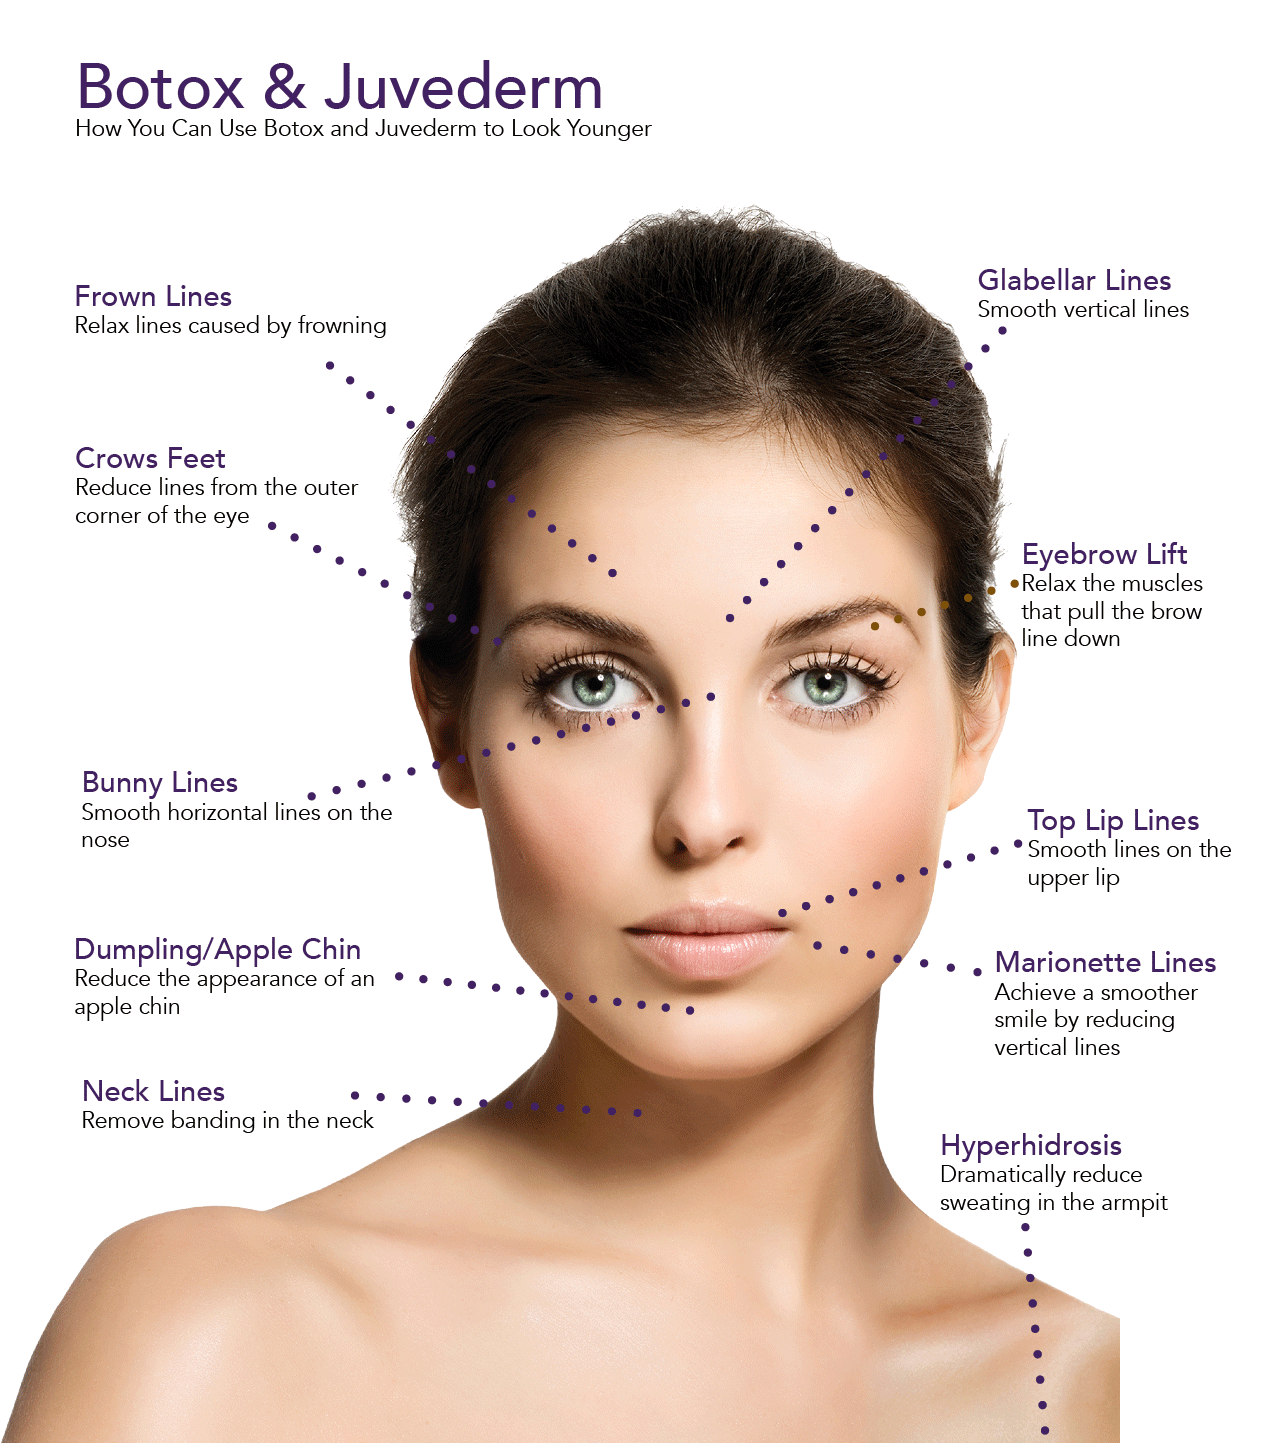 Botox juvederm diagram of face body skin pinterest dermal botox juvederm diagram of face pooptronica Image collections